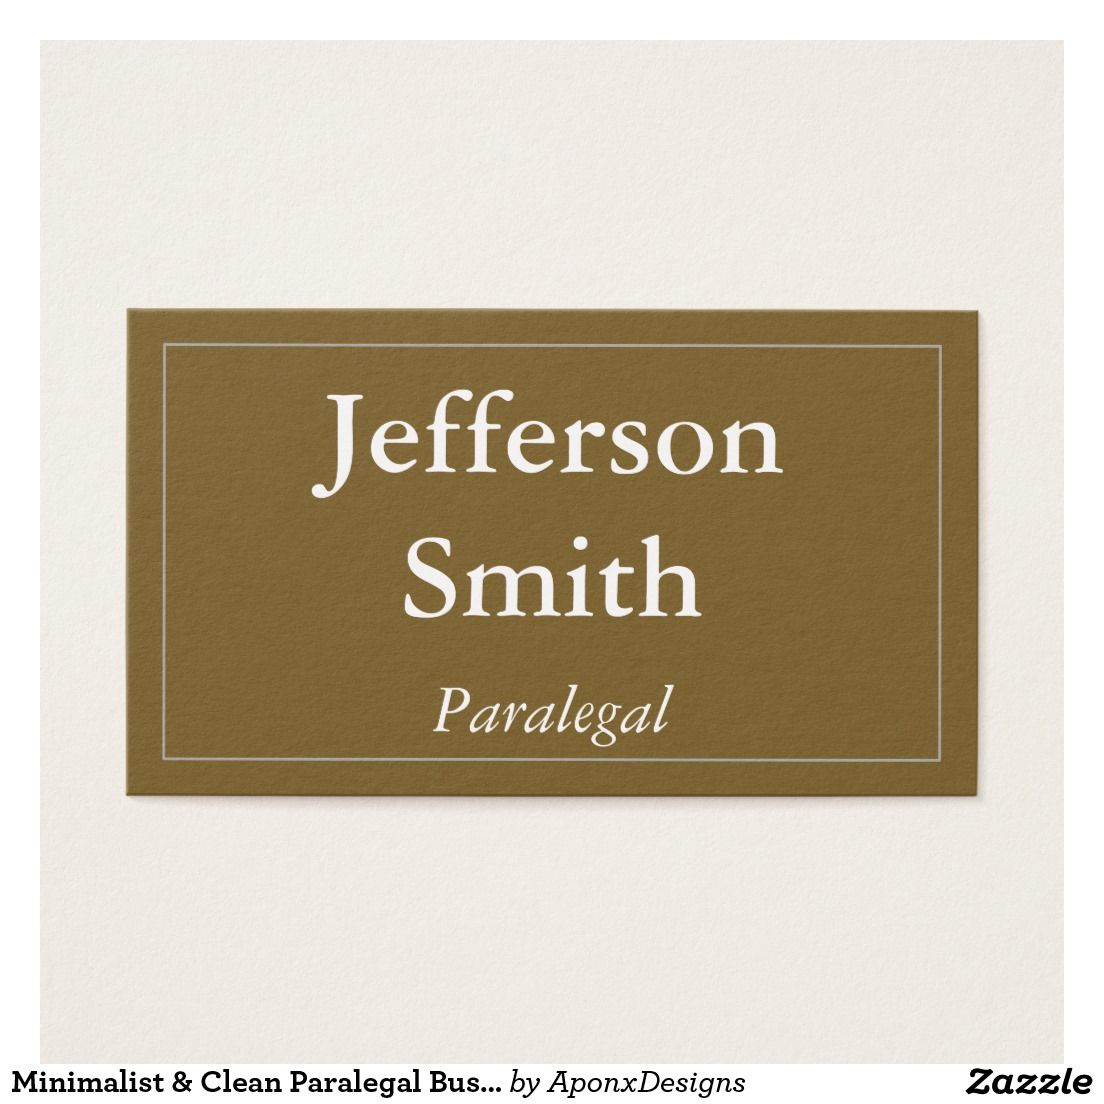 Minimalist & Clean Paralegal Business Card   Customizable Business ...